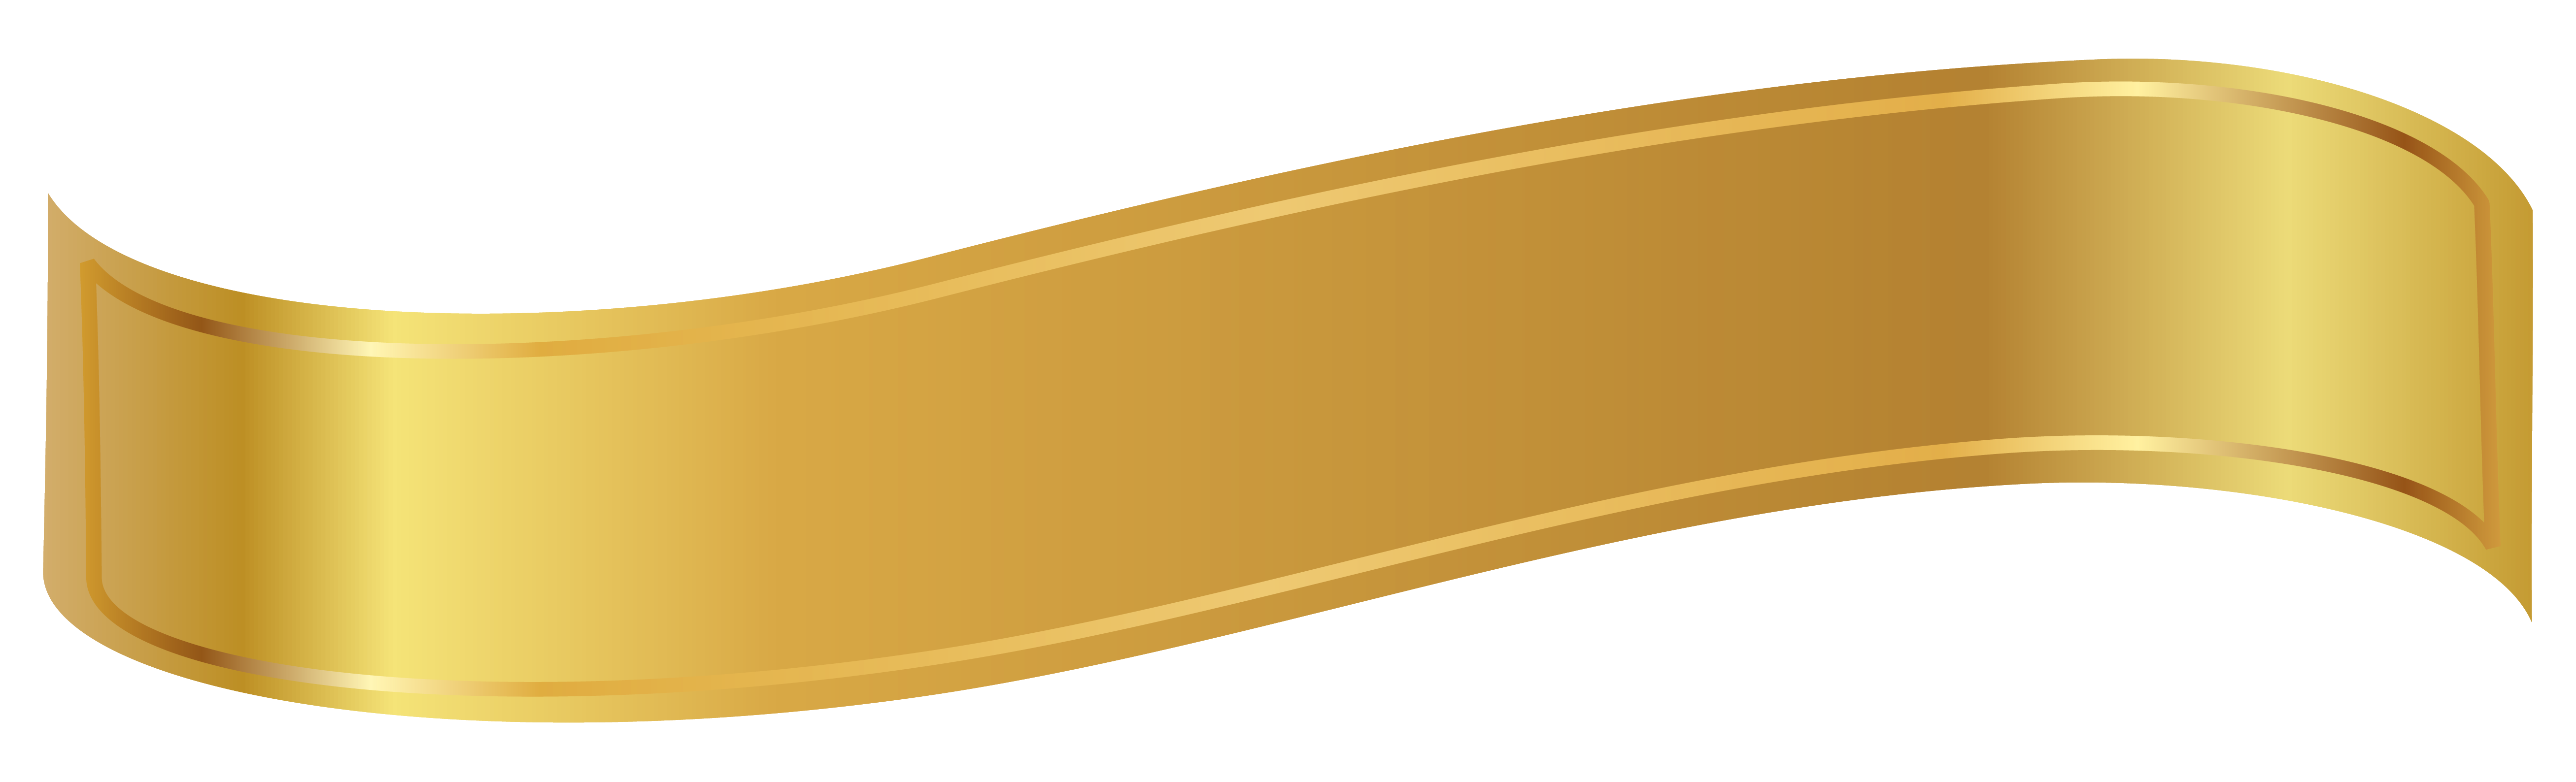 Golden Ribbon Free PNG HQ PNG Image